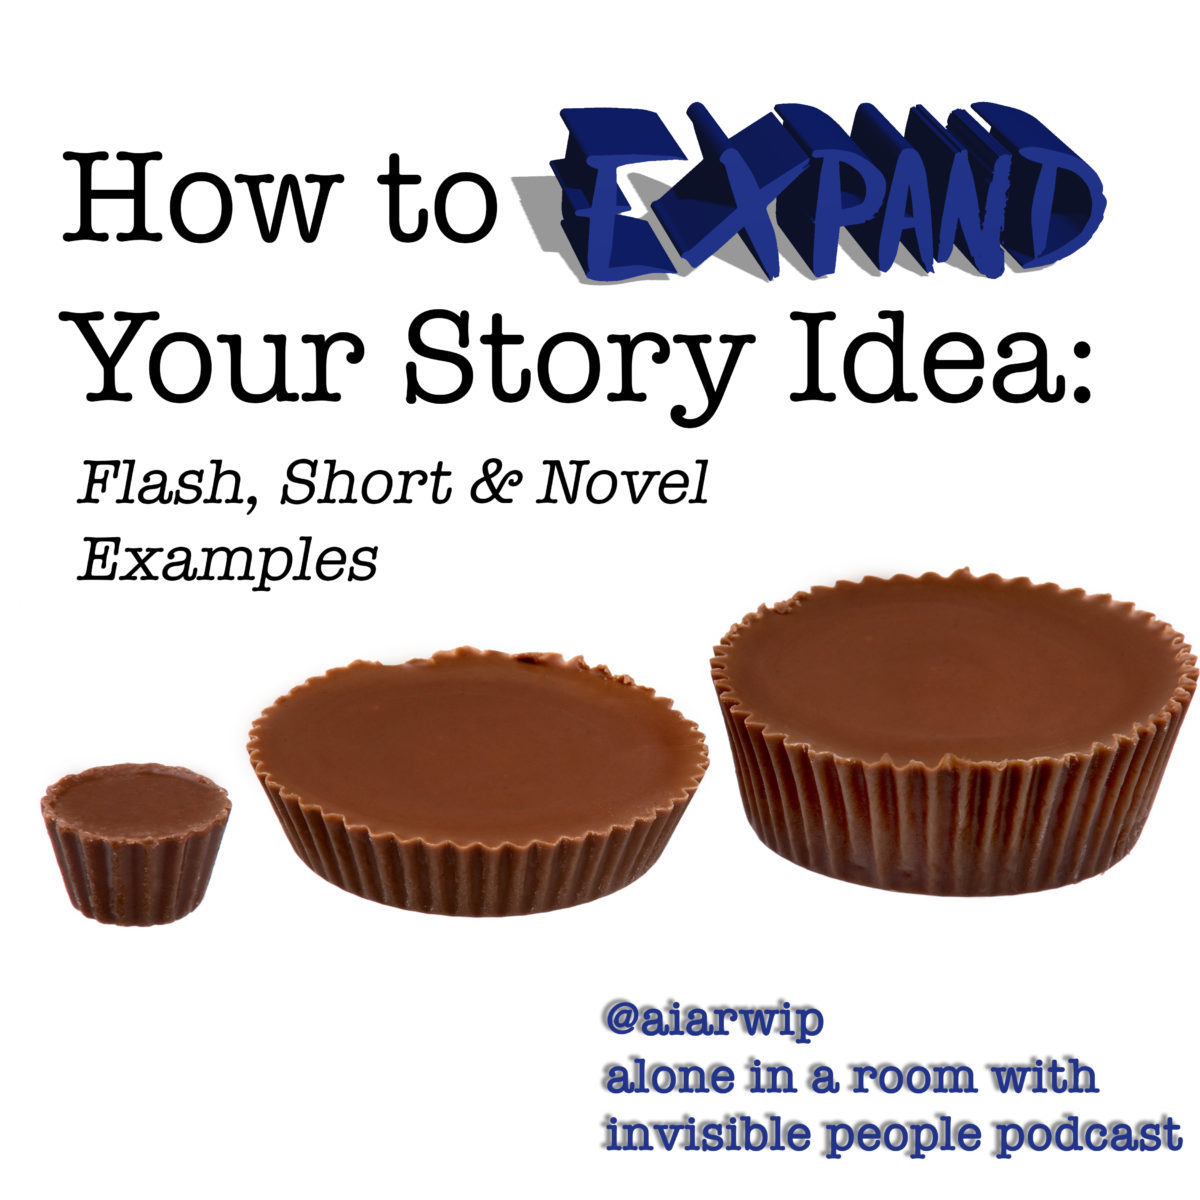 Episode 77: How to Expand Your Story Idea: Flash, Short Story and Novel Examples